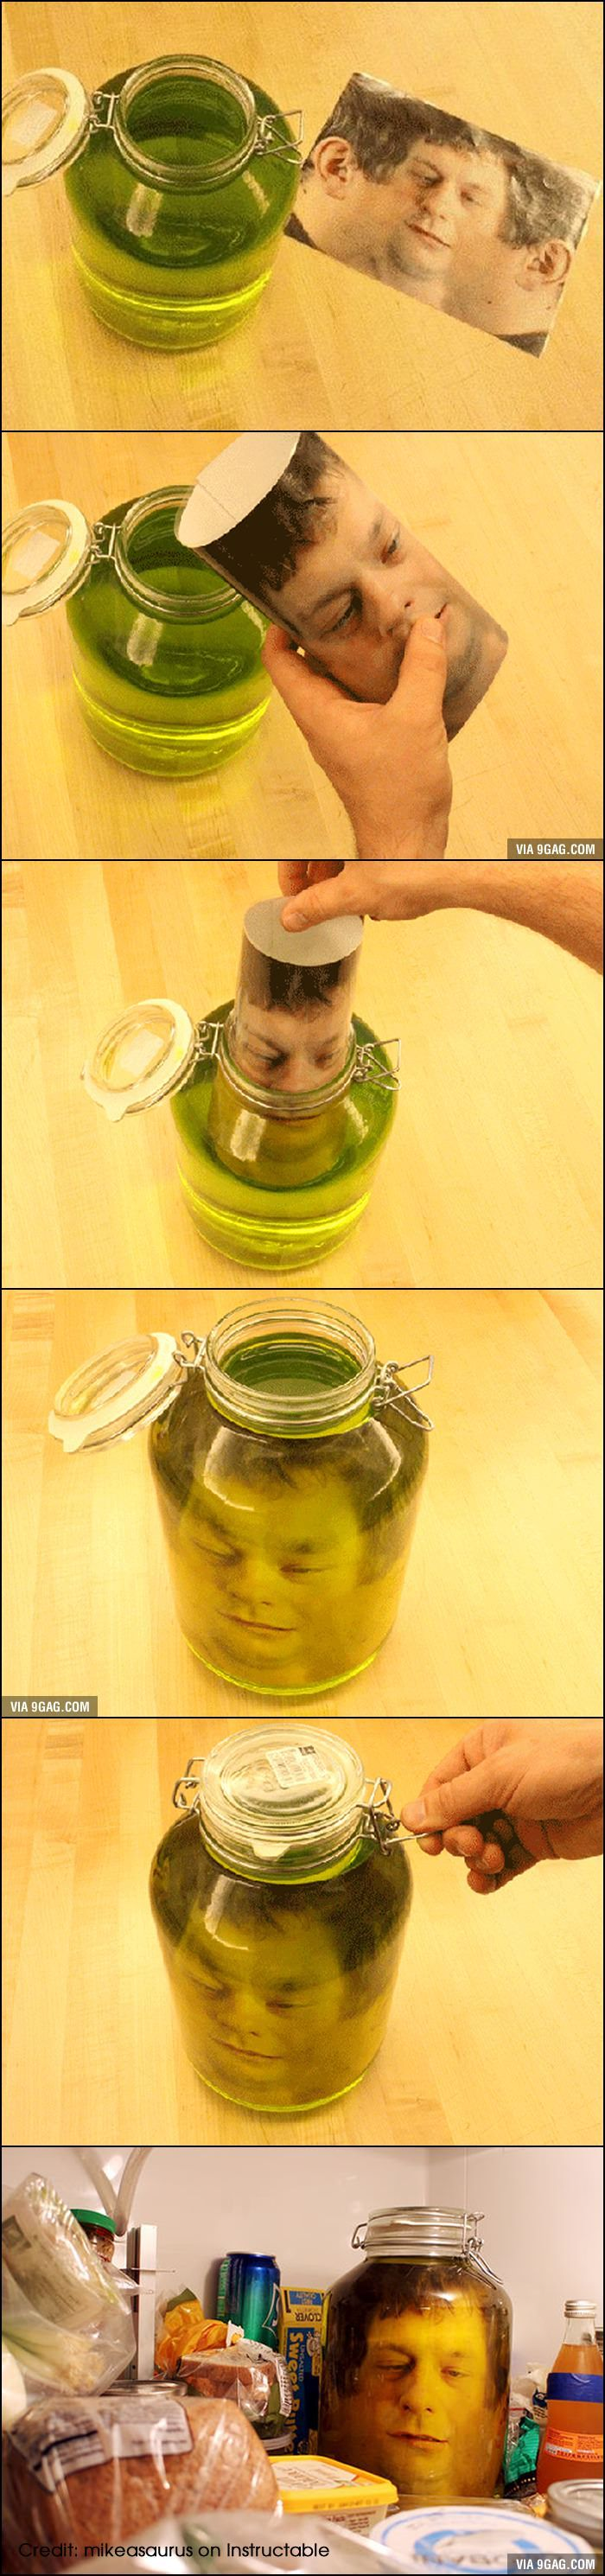 "This ""Head In A Jar"" Prank Is Pretty Scary:"